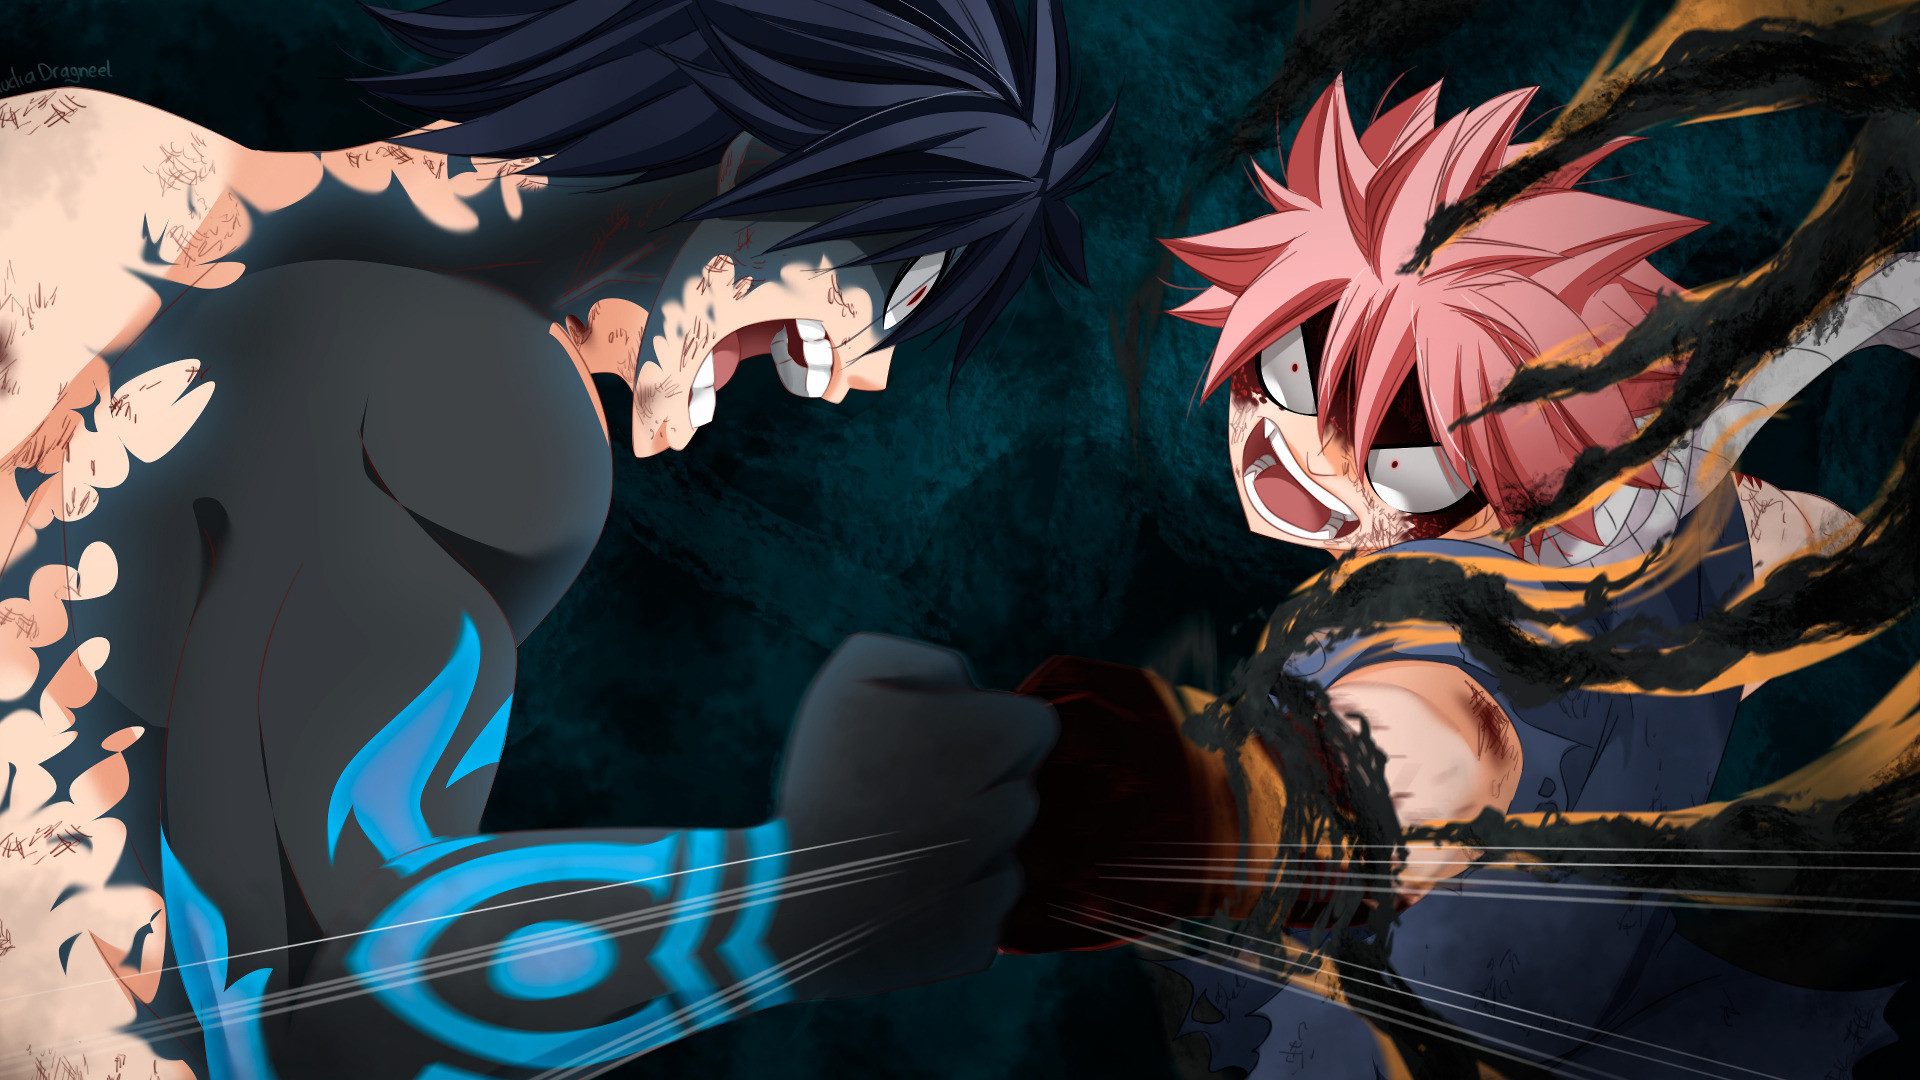 1920x1080 HD Wallpaper Anime, Fairy Tail, Gray Fullbuster, Natsu Dragneel